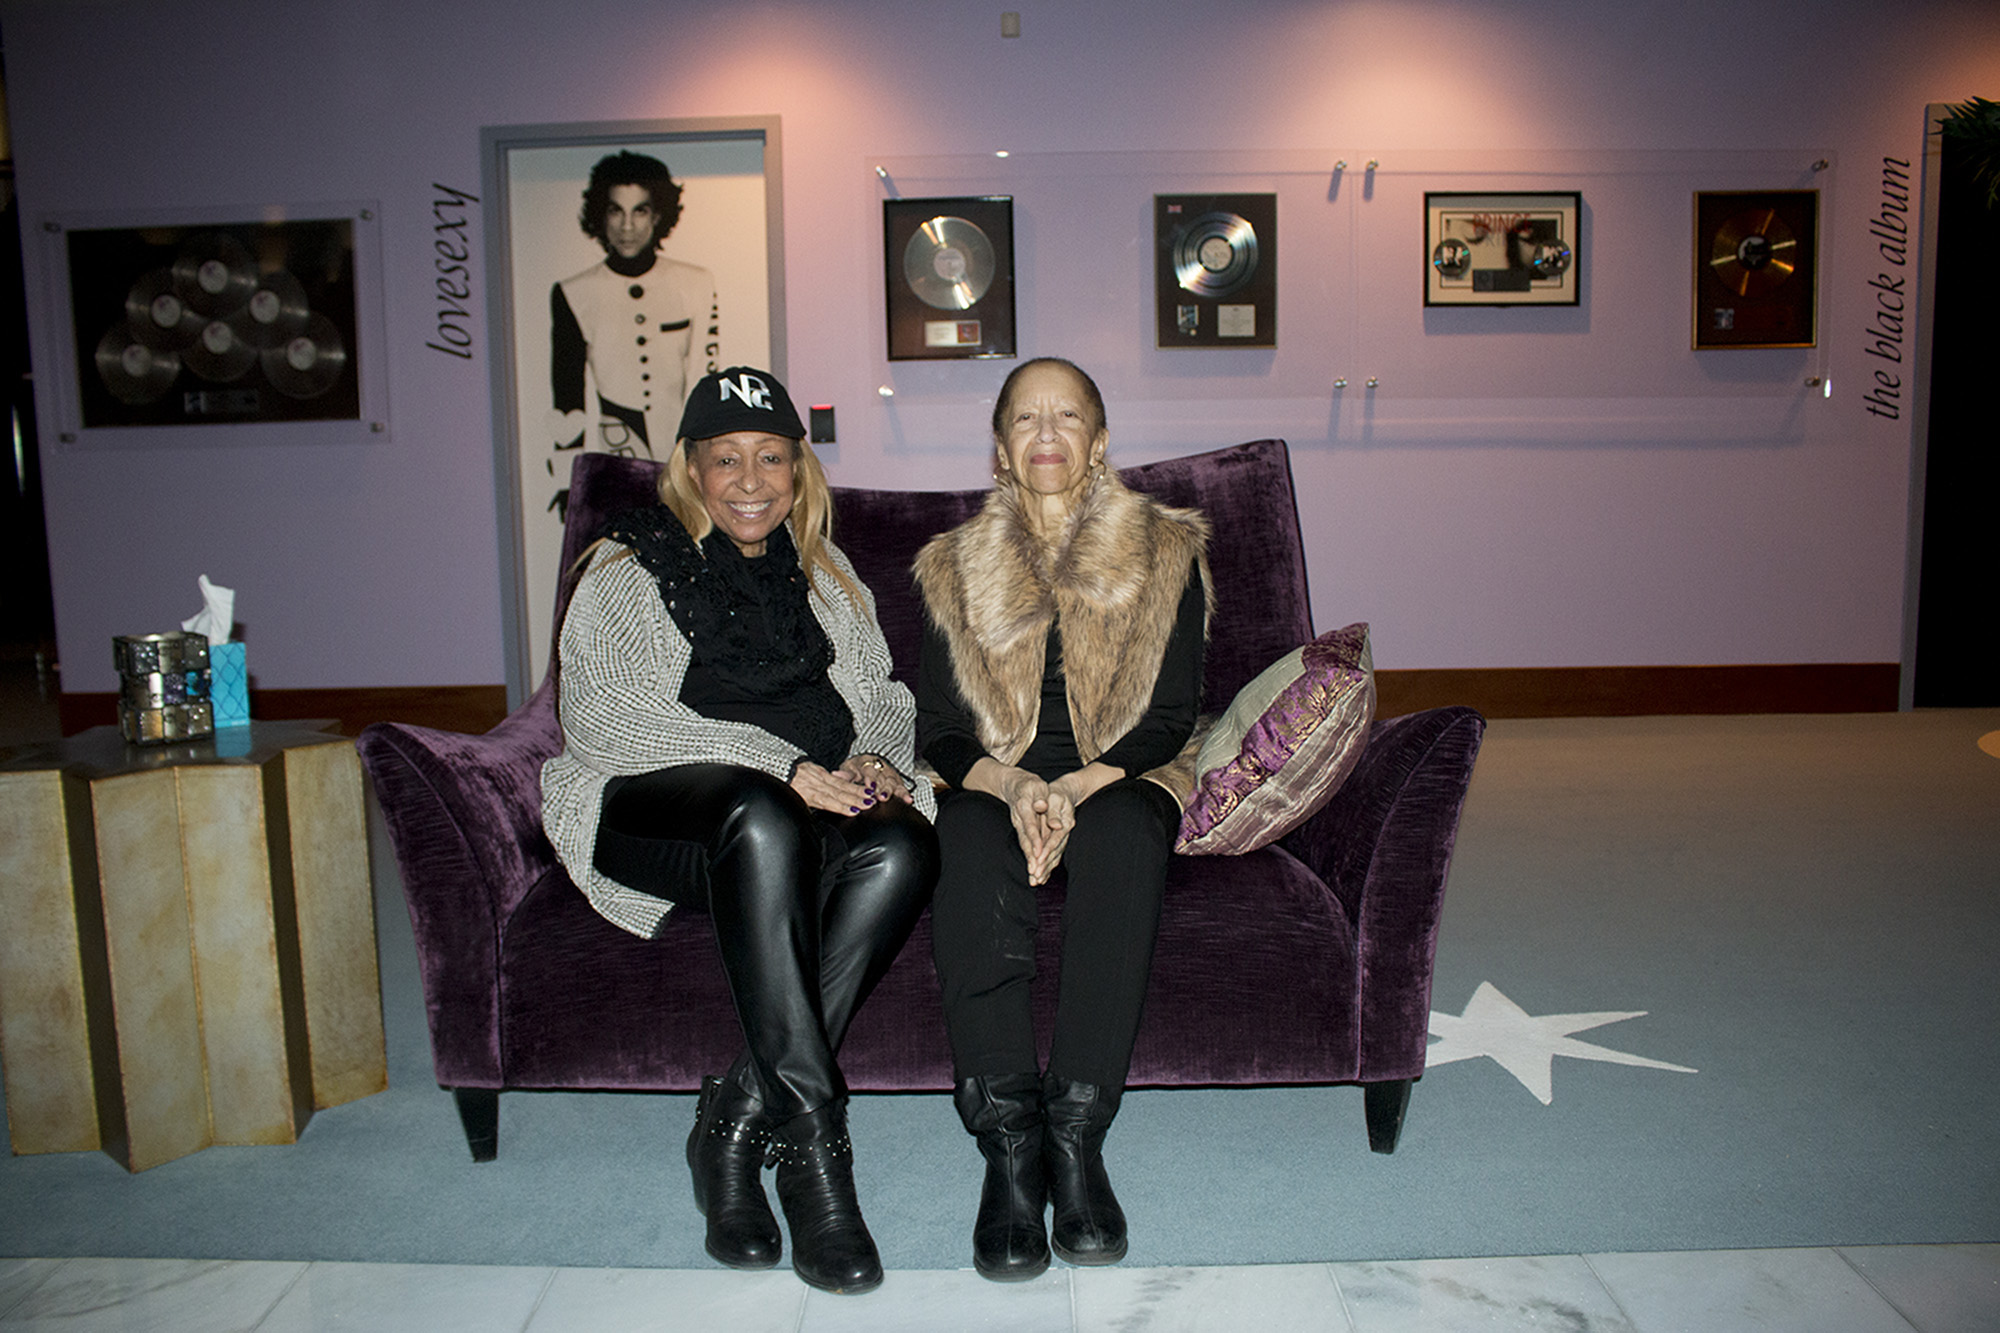 Sharon & Norrine in Paisley Park